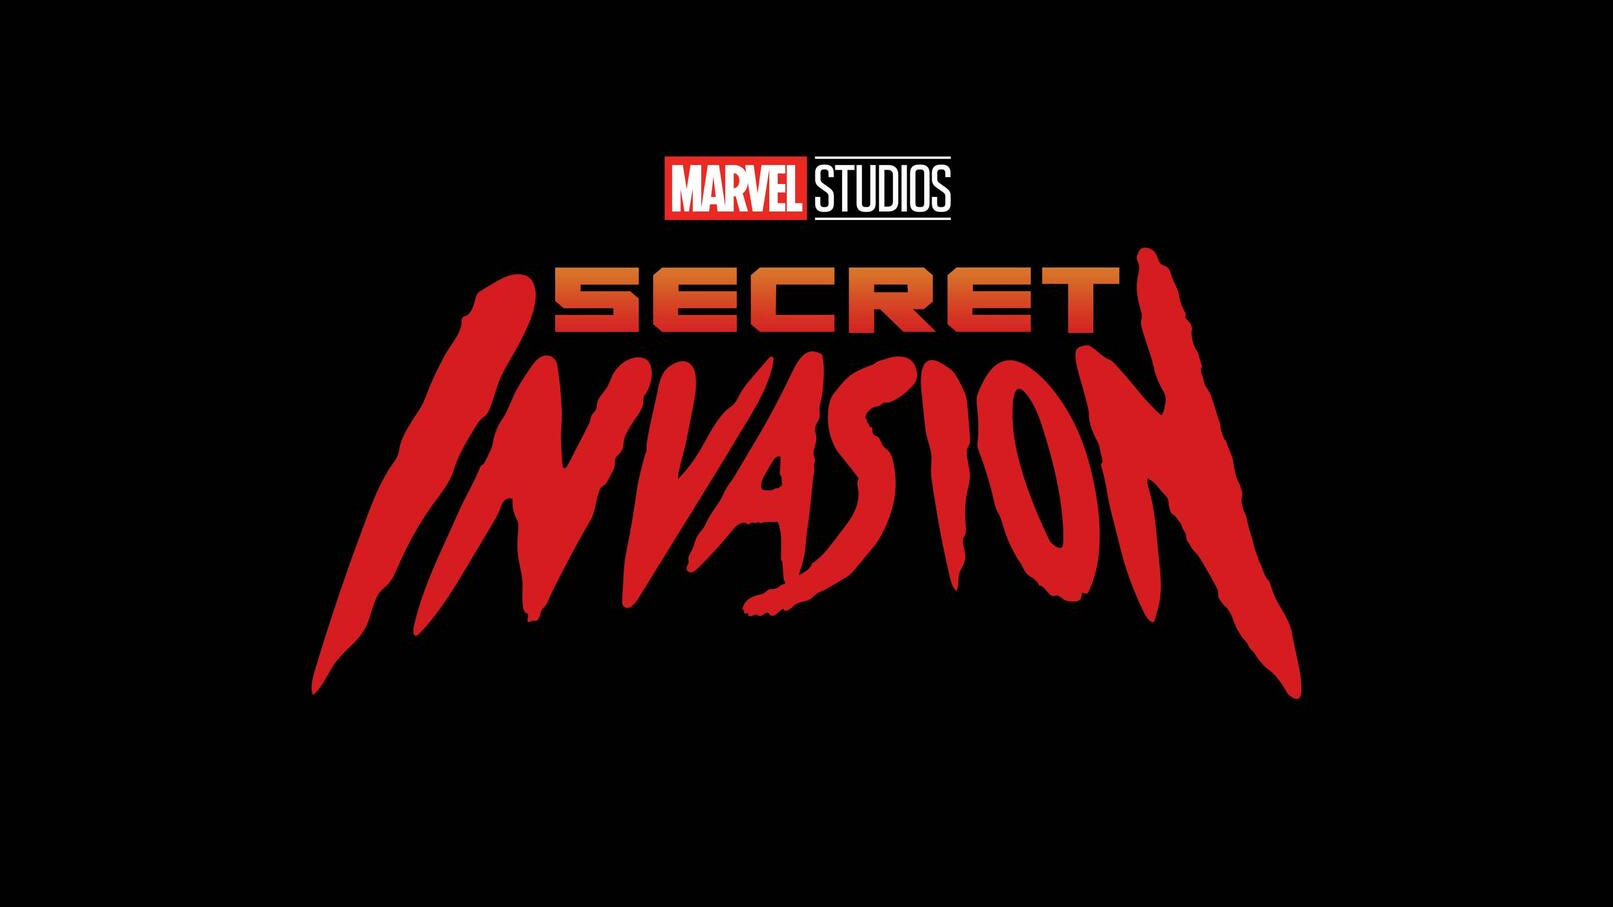 Exclusive: The Cast Of Marvel's Secret Invasion Series Revealed